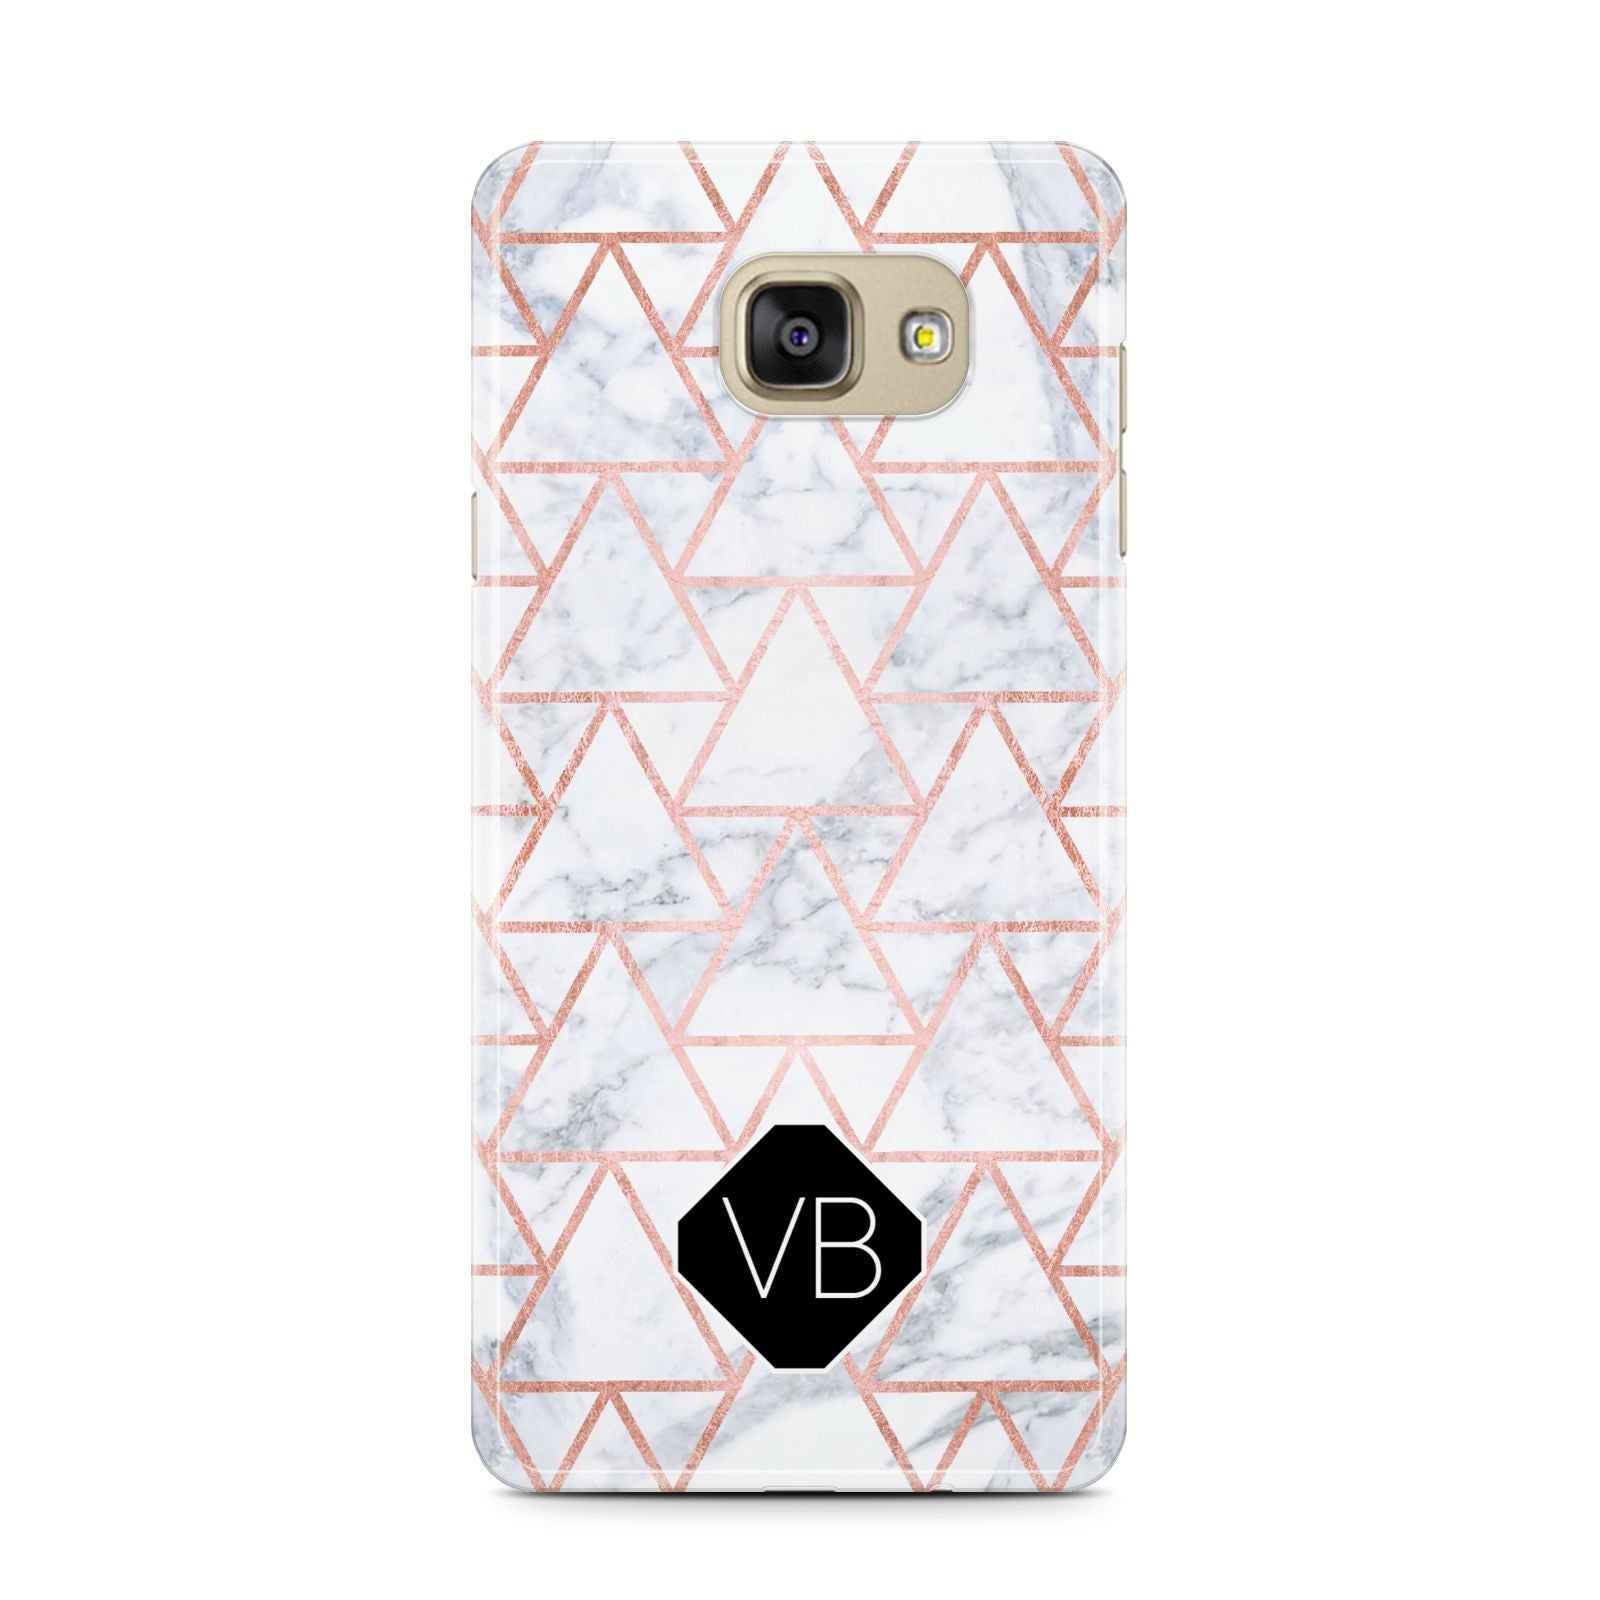 Personalised Rose Gold Grey Marble Hexagon Samsung Galaxy A7 2016 Case on gold phone